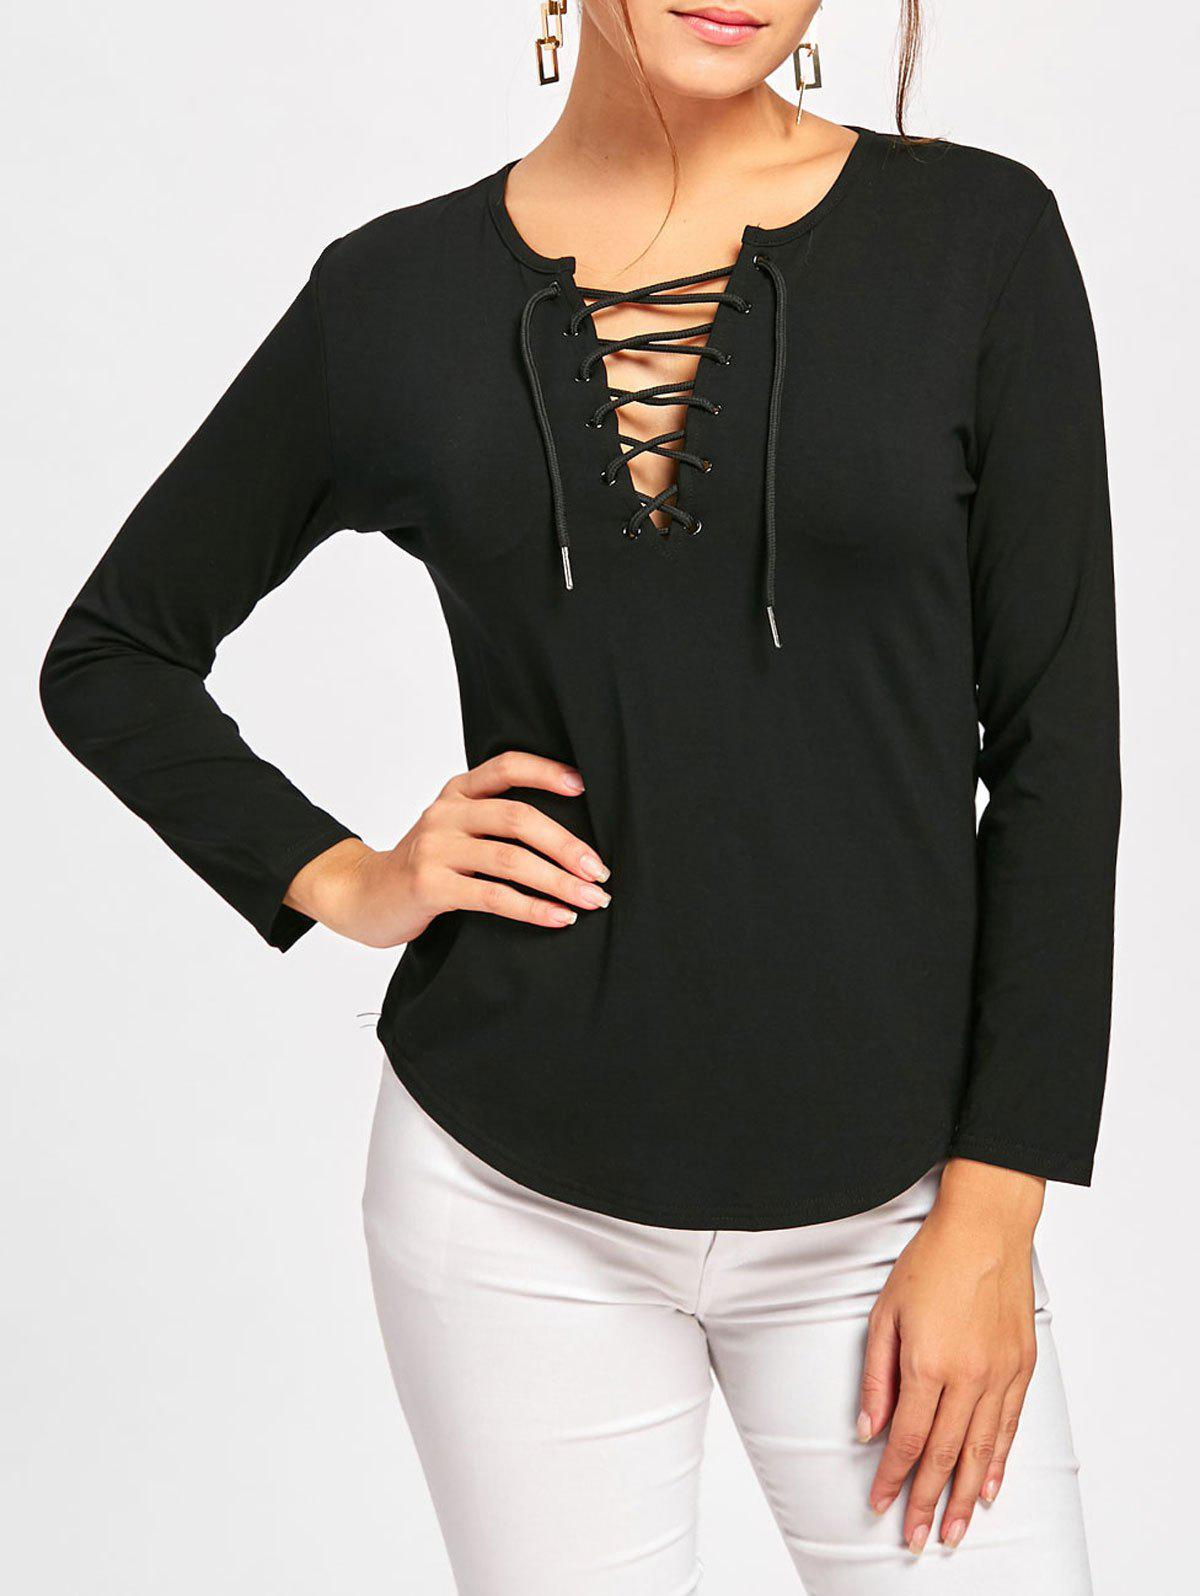 Plunge Lace Up Long Sleeve Tee - BLACK L